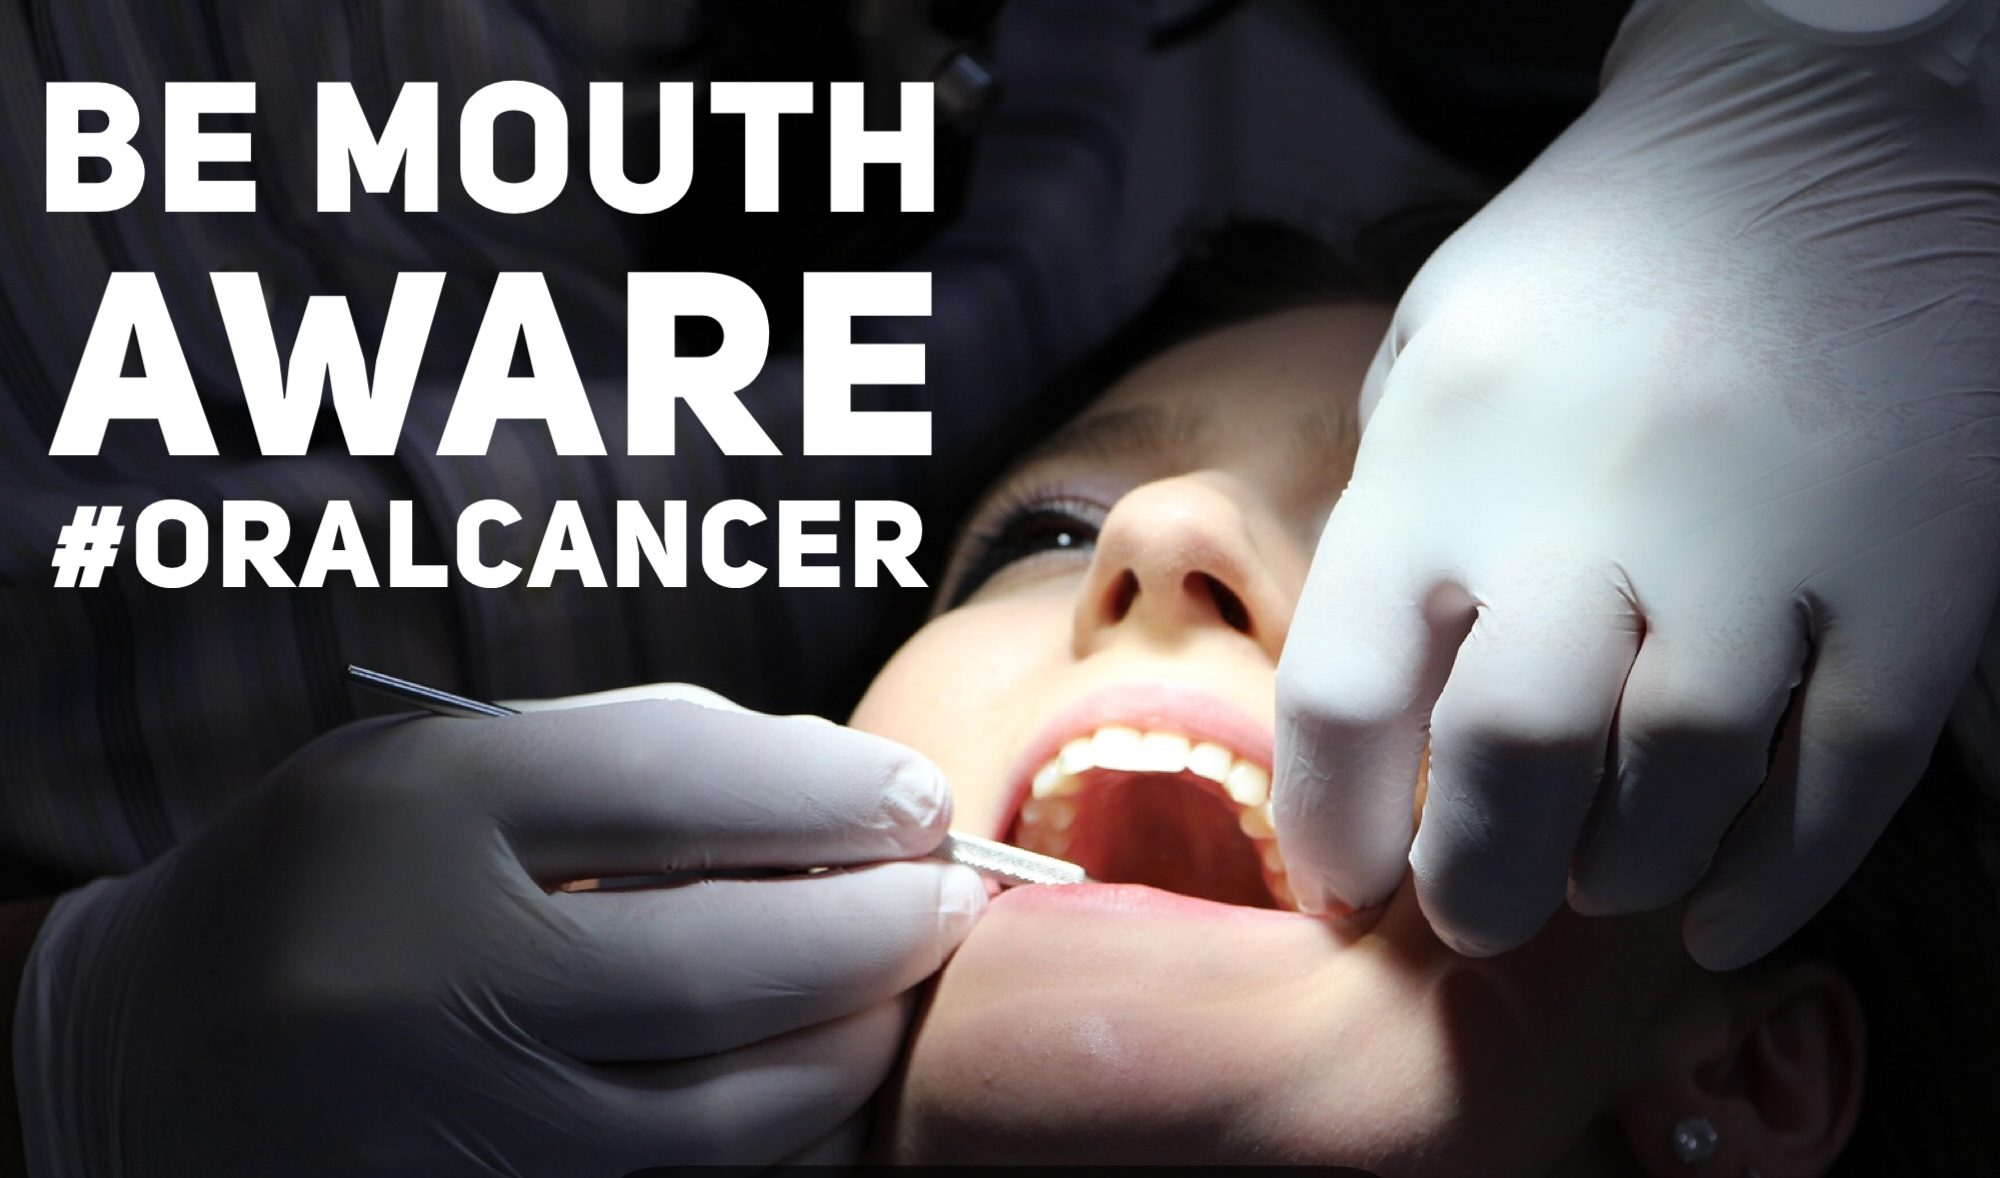 Check your mouth for oral cancer